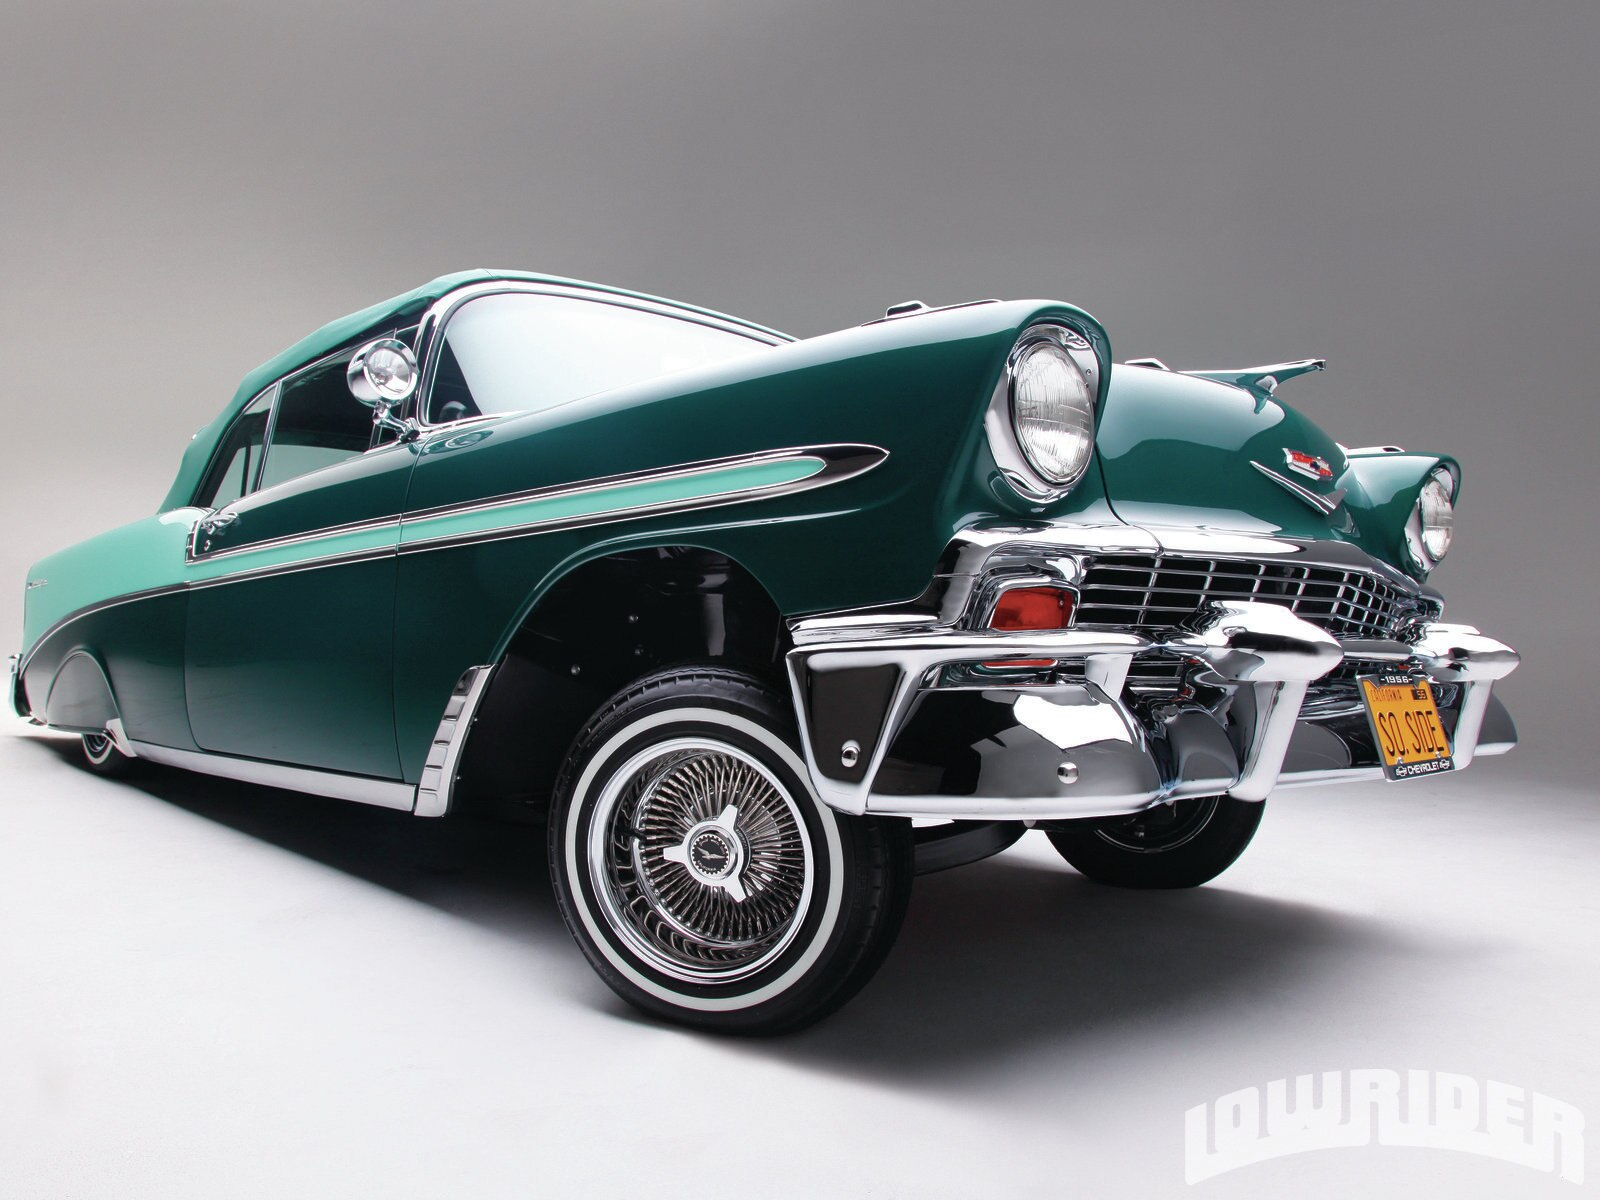 1304-lrmp-02-o-exclusively-photographed-for-lowrider-magazine-1956-chevy-bel-air1